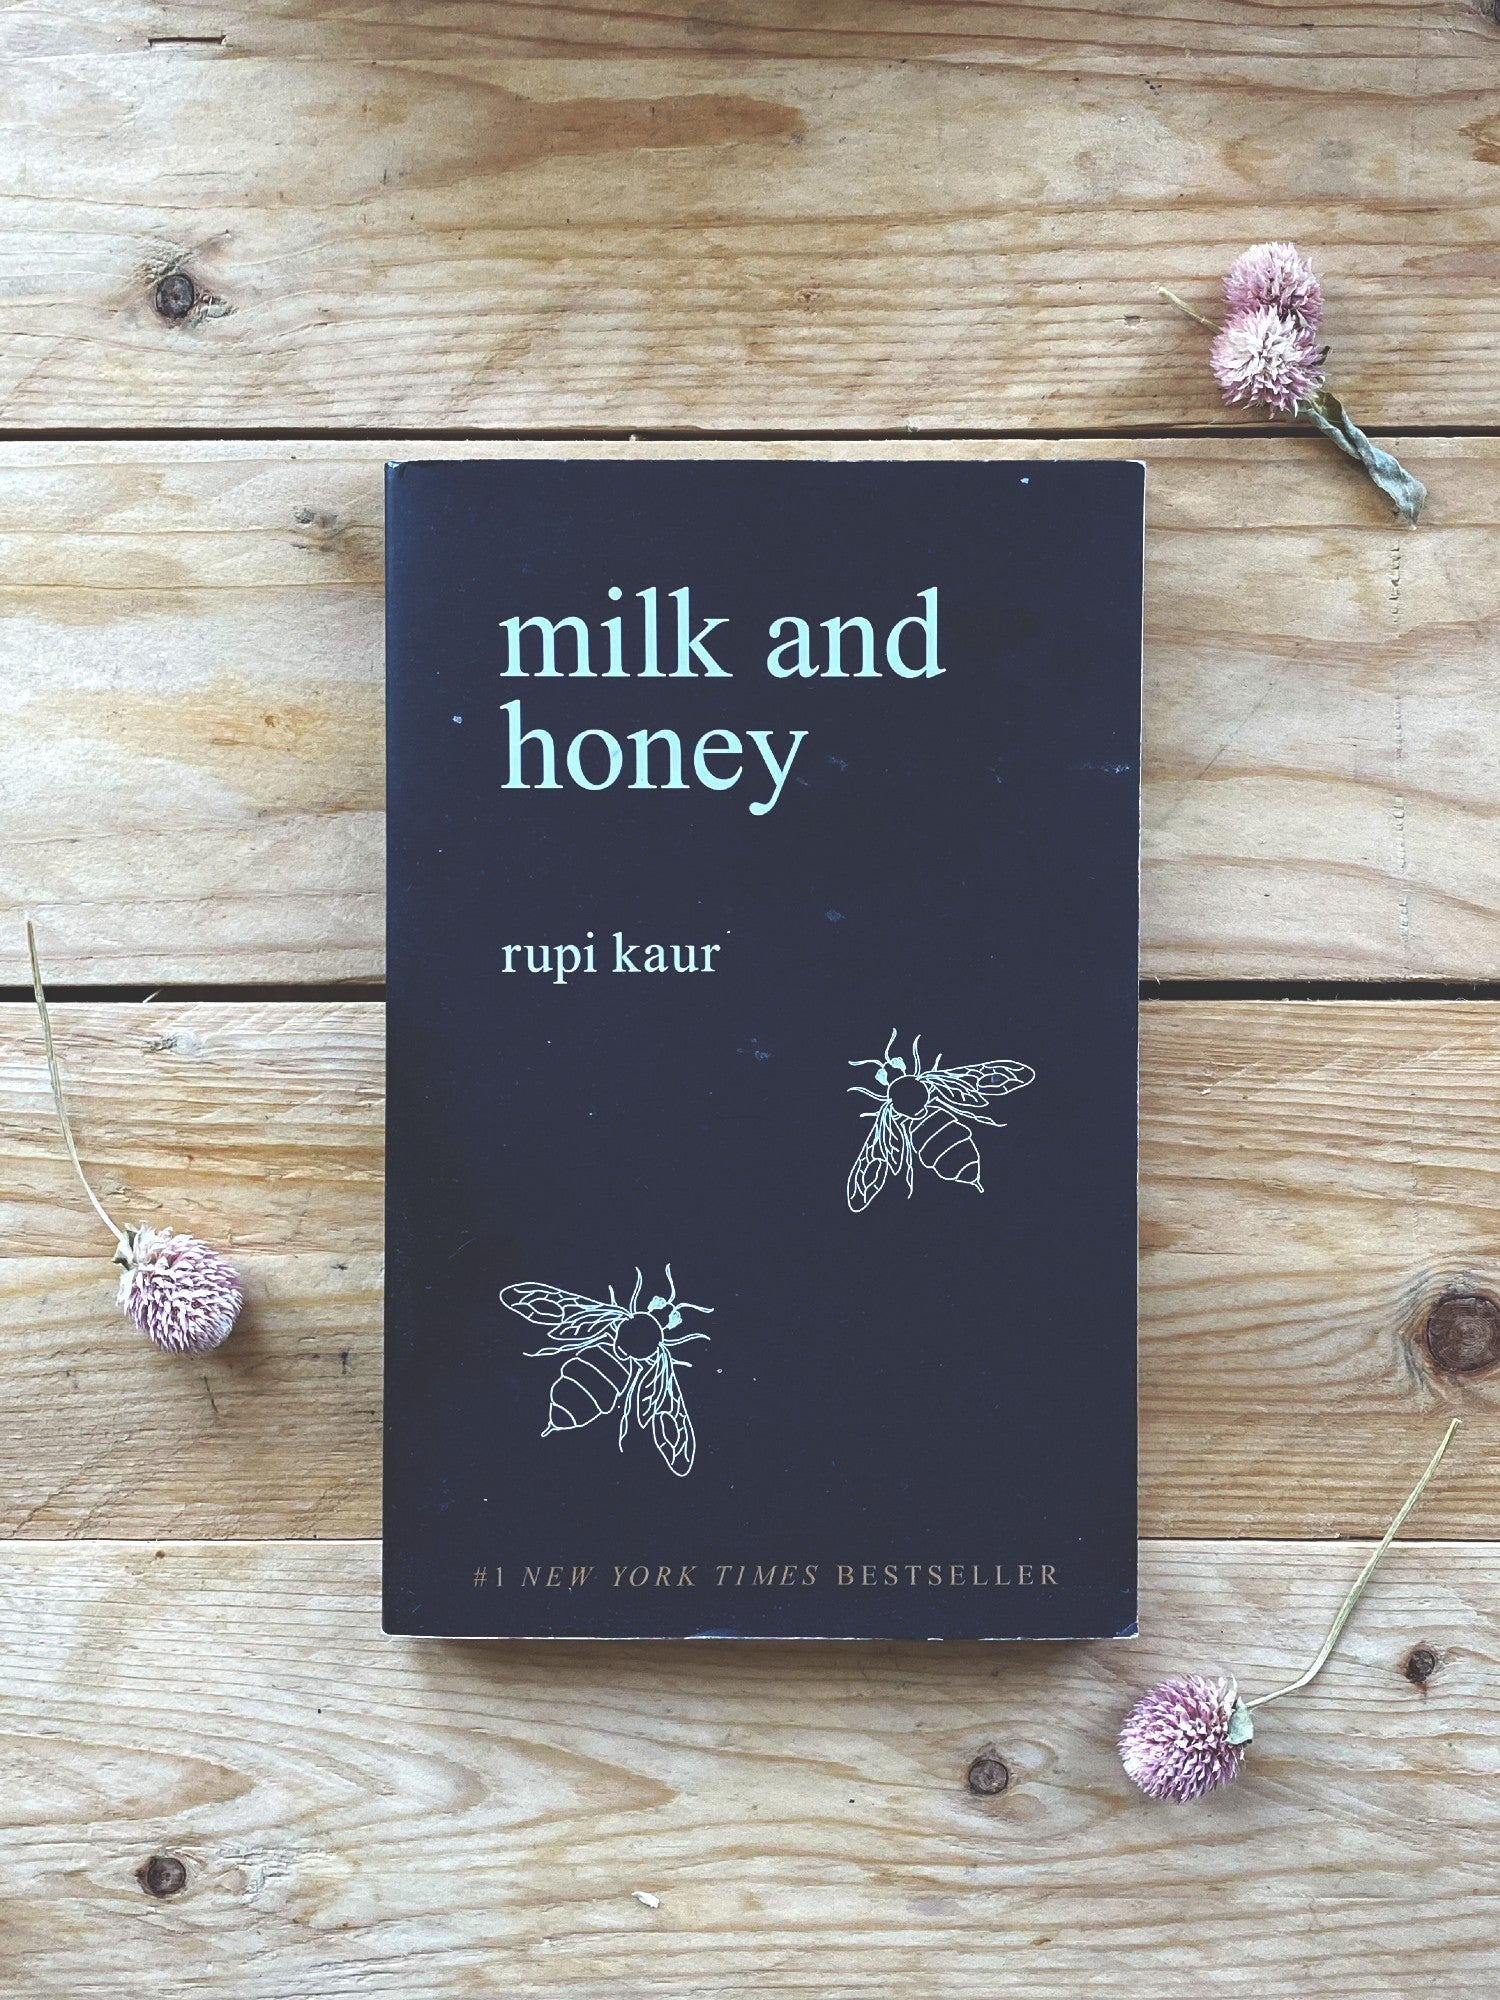 The Lonely Hearts Book Club: Milk and Honey by Rupi Kaur